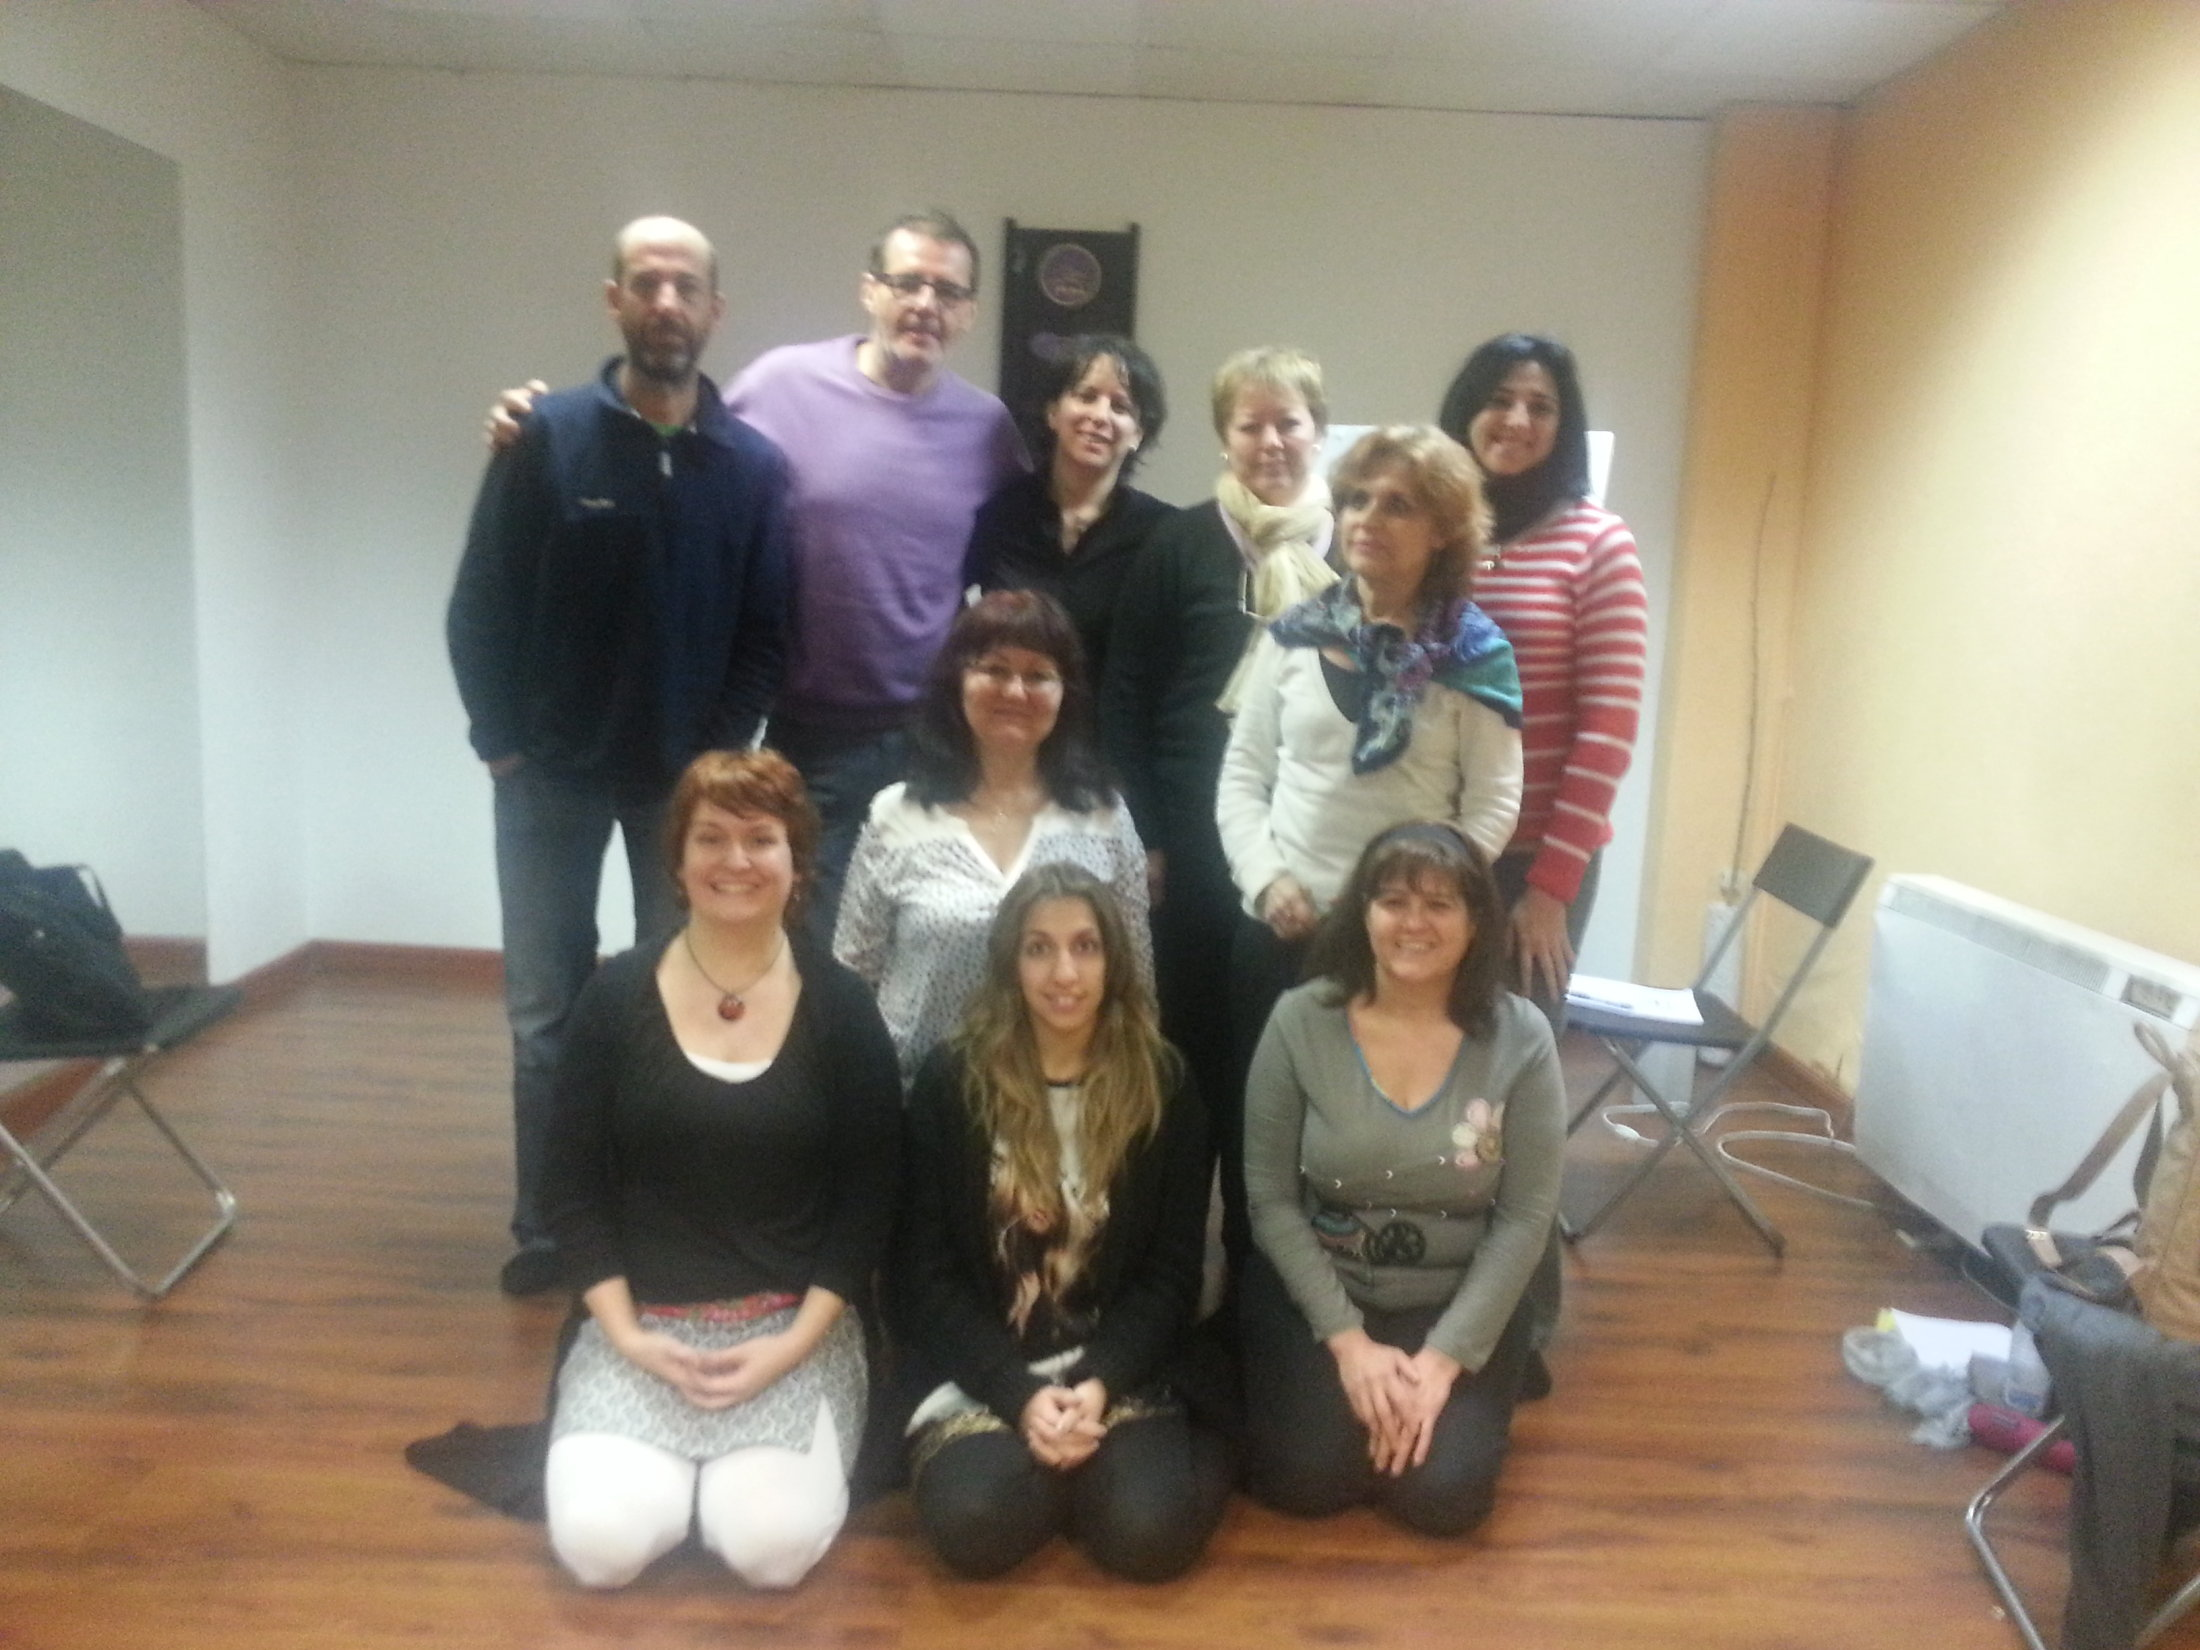 Curso EFT Tapping Madrid 9-02-14